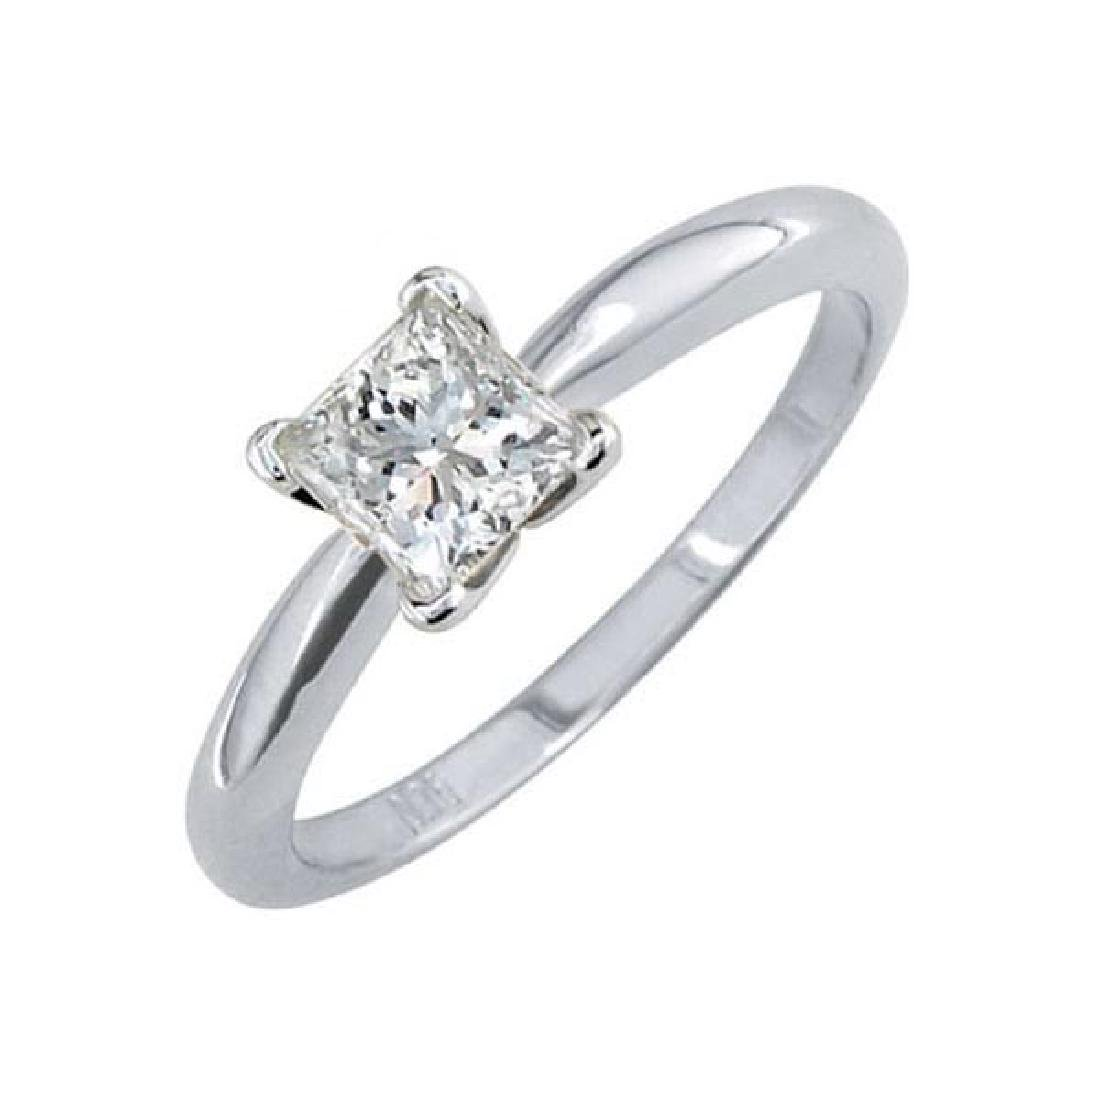 Certified 1.17 CTW Princess Diamond Solitaire 14k Ring